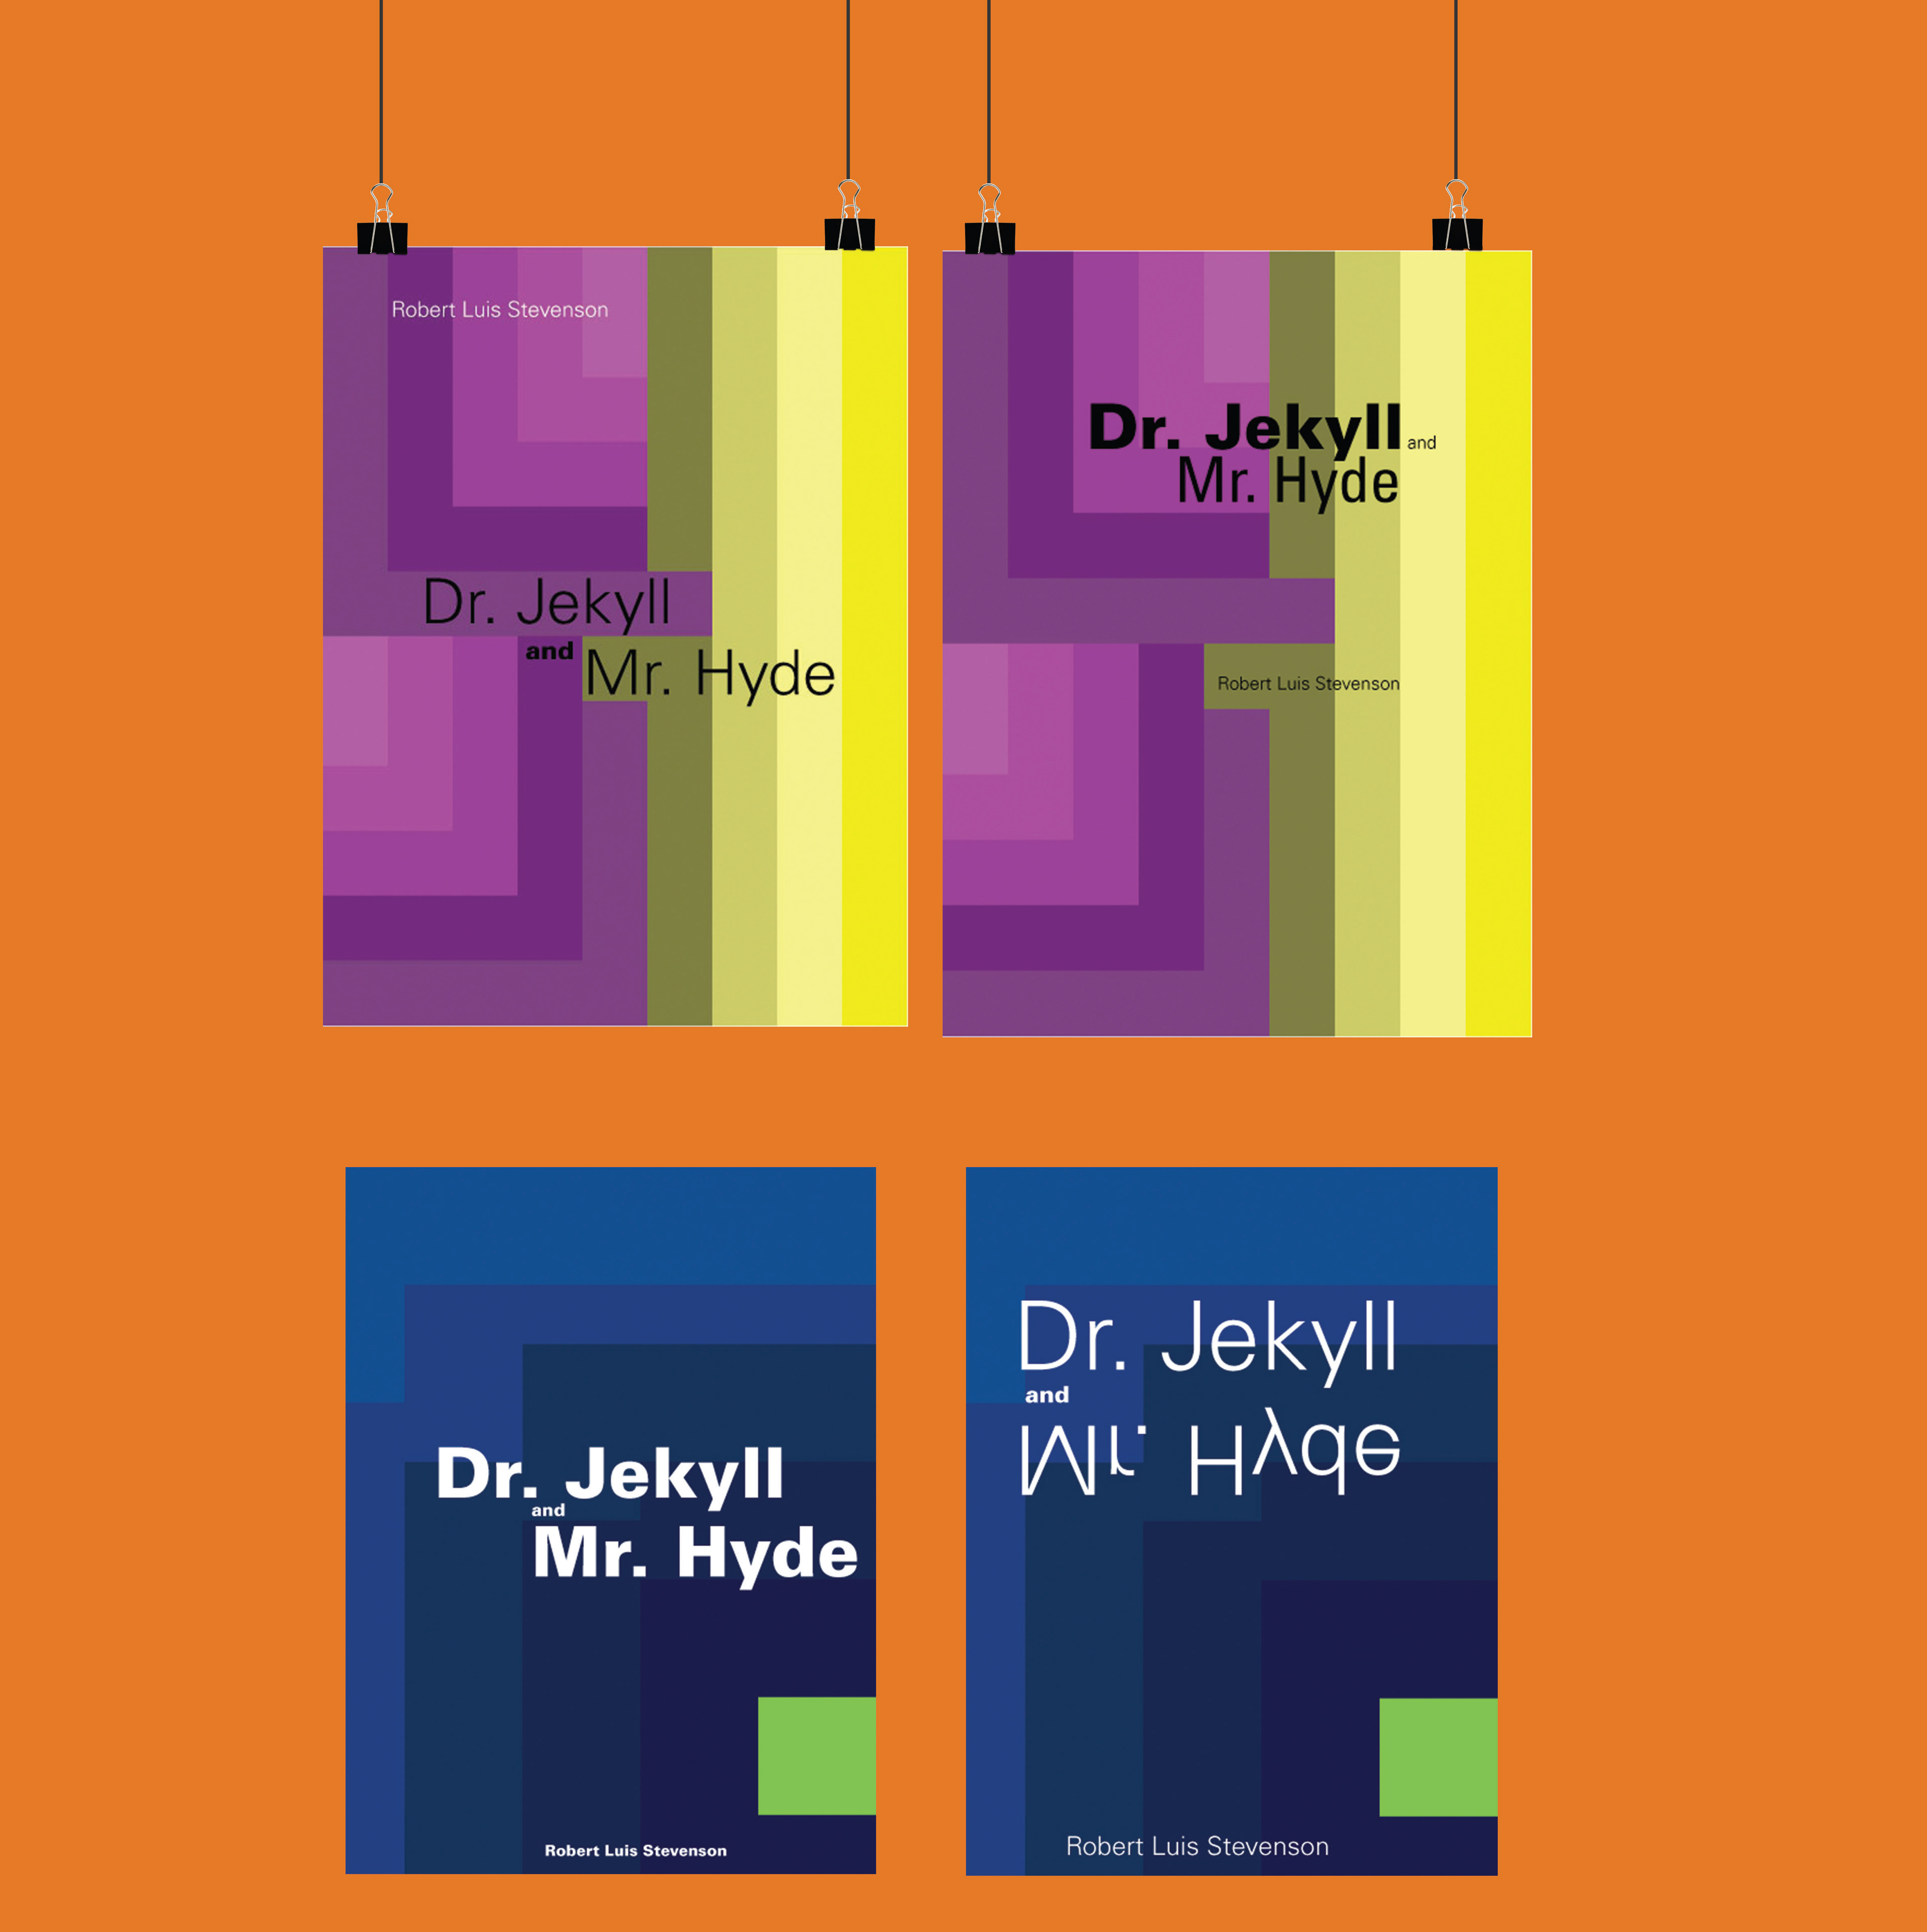 Elizabeth Villarreal - Dr. Jekyll and Mr. Hyde, Color Theory Book Covers